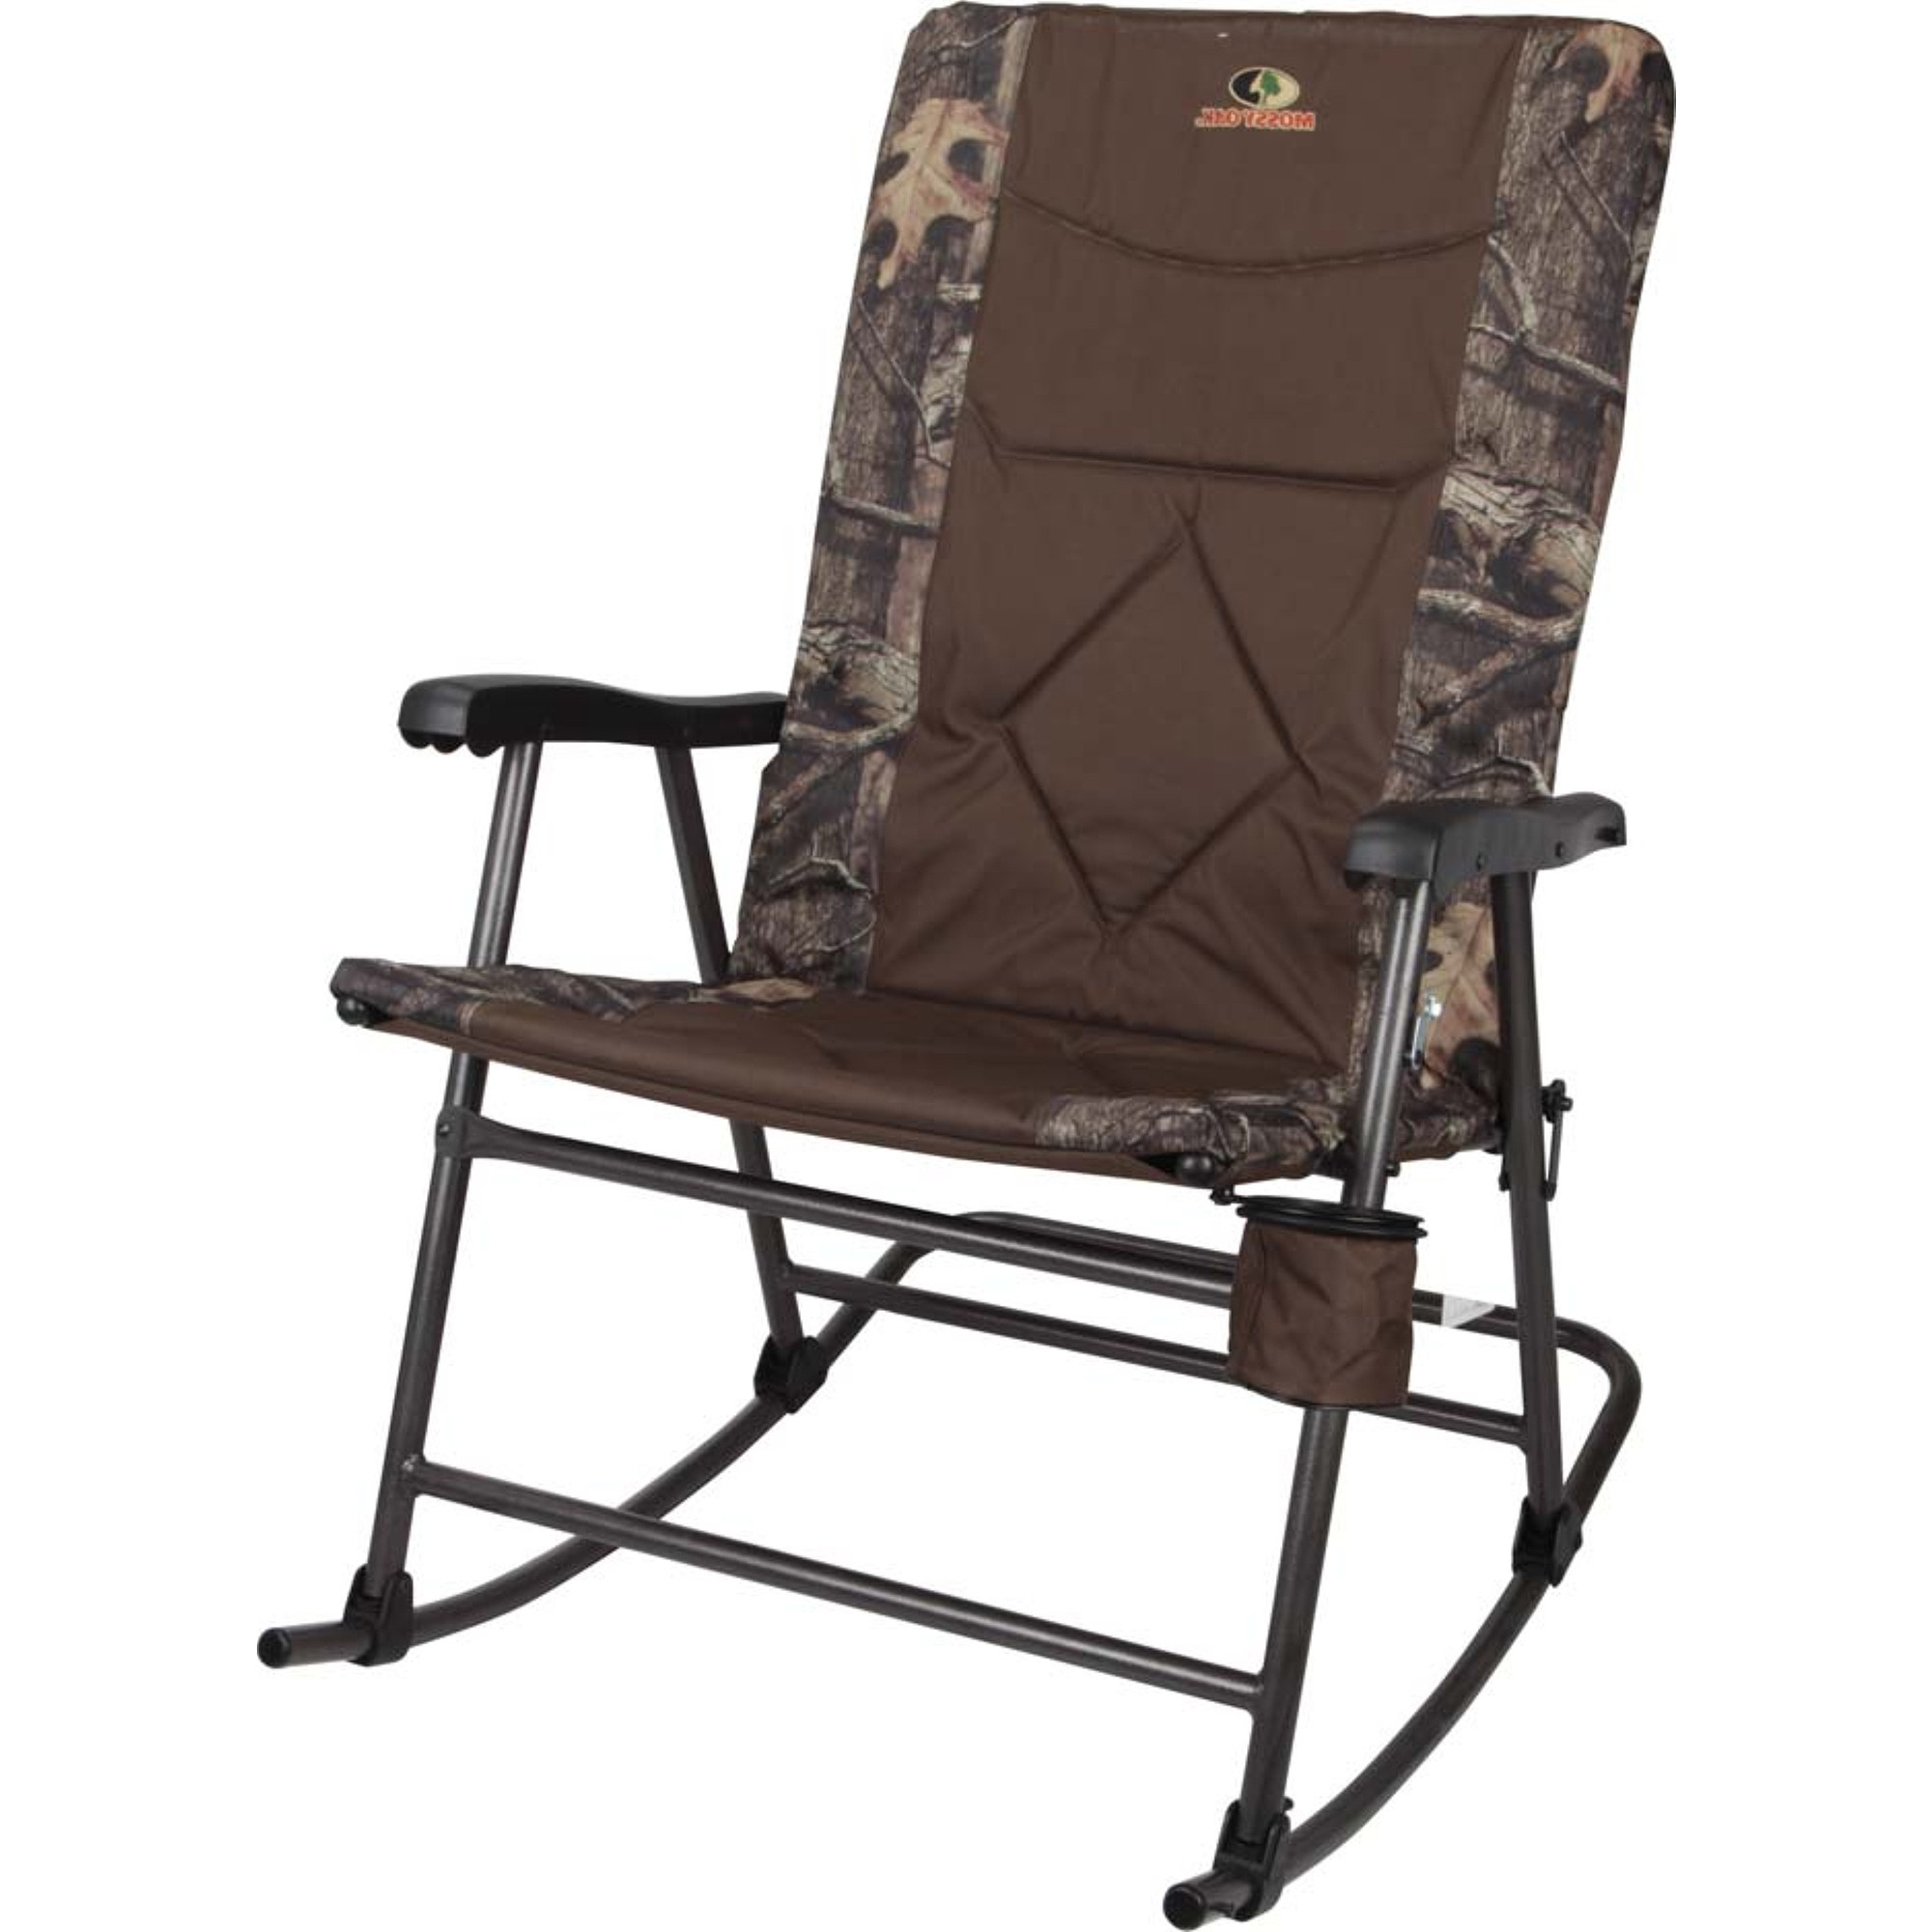 Latest Rocking Chairs At Walmart Throughout Wayfair Rocking Chair Cushions Outdoor Classy Images Design (View 10 of 15)